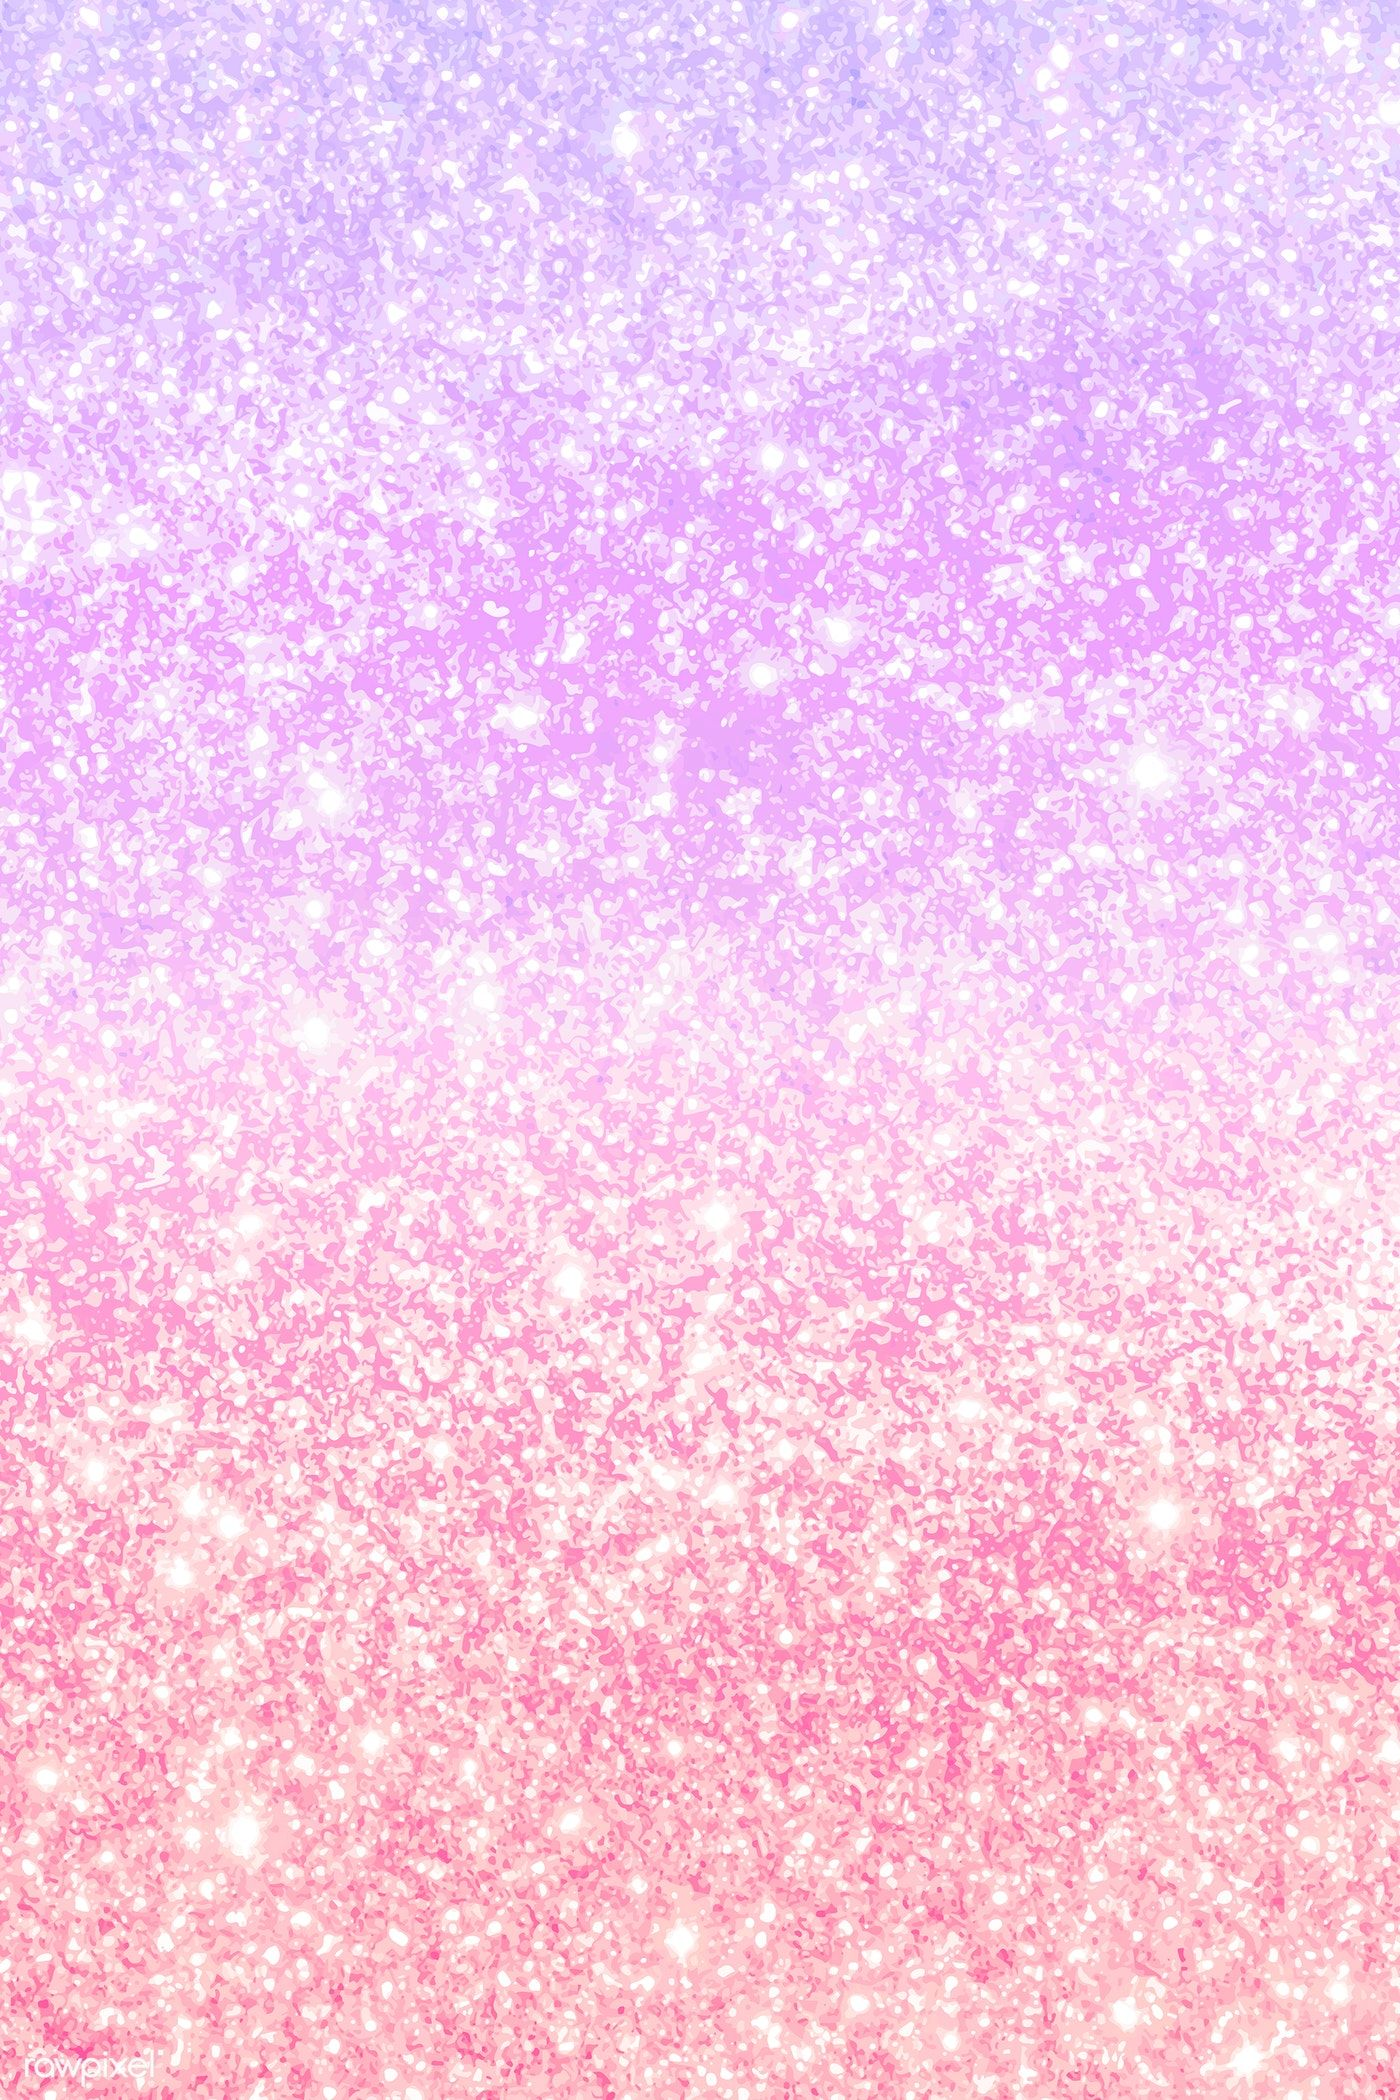 Pink And Purple Wallpaper For Mobile Best Hd Wallpapers Pink And Purple Wallpaper Purple Wallpaper Purple Wallpaper Hd